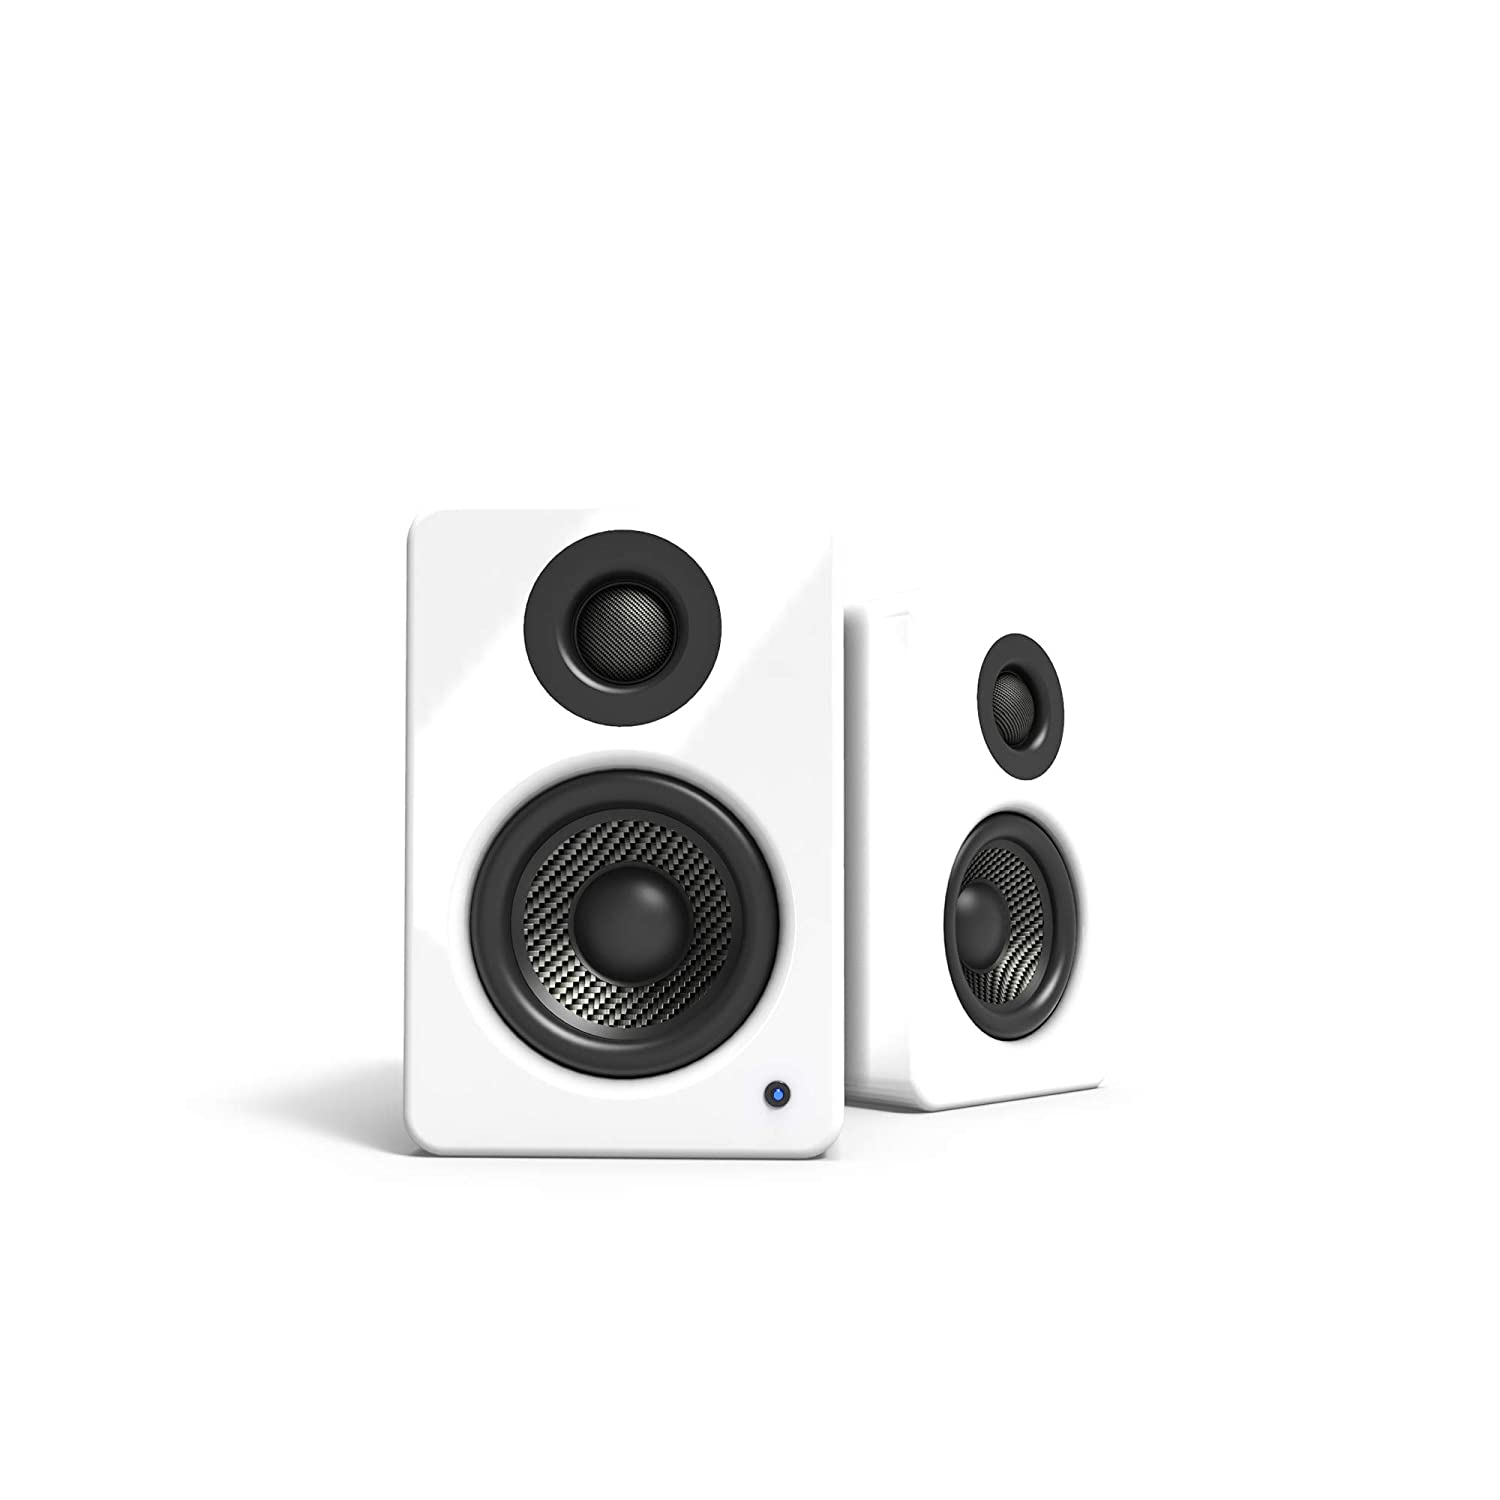 Kanto 2 Channel Powered PC Gaming Desktop Speakers 3 Composite Drivers 3 4 Silk Dome Tweeter Class D Amplifier – 100 Watts – Built-in USB DAC – Subwoofer Output – YU2GW Gloss White